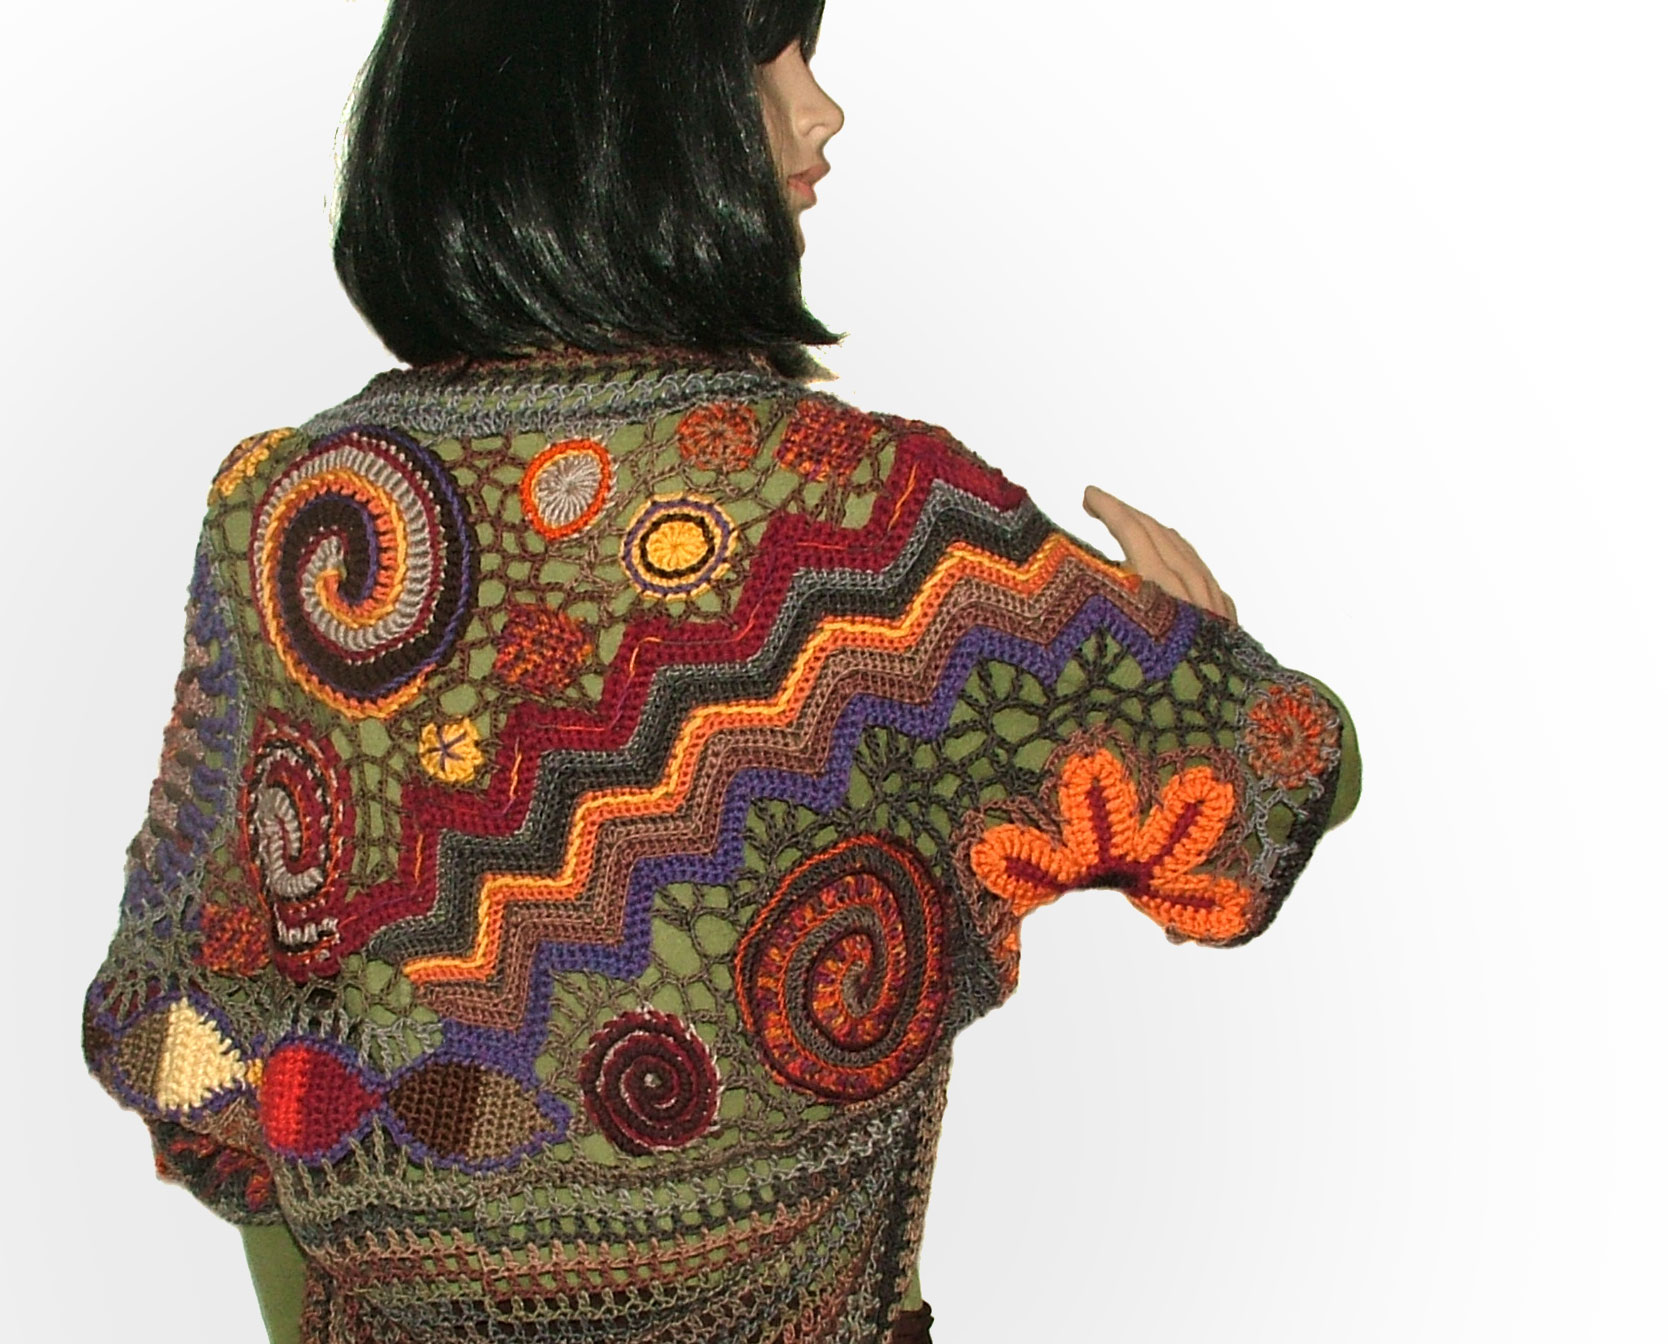 Noro shrug | Renate Kirkpatrick\'s Freeform Crochet~Knit~Fibre Designs